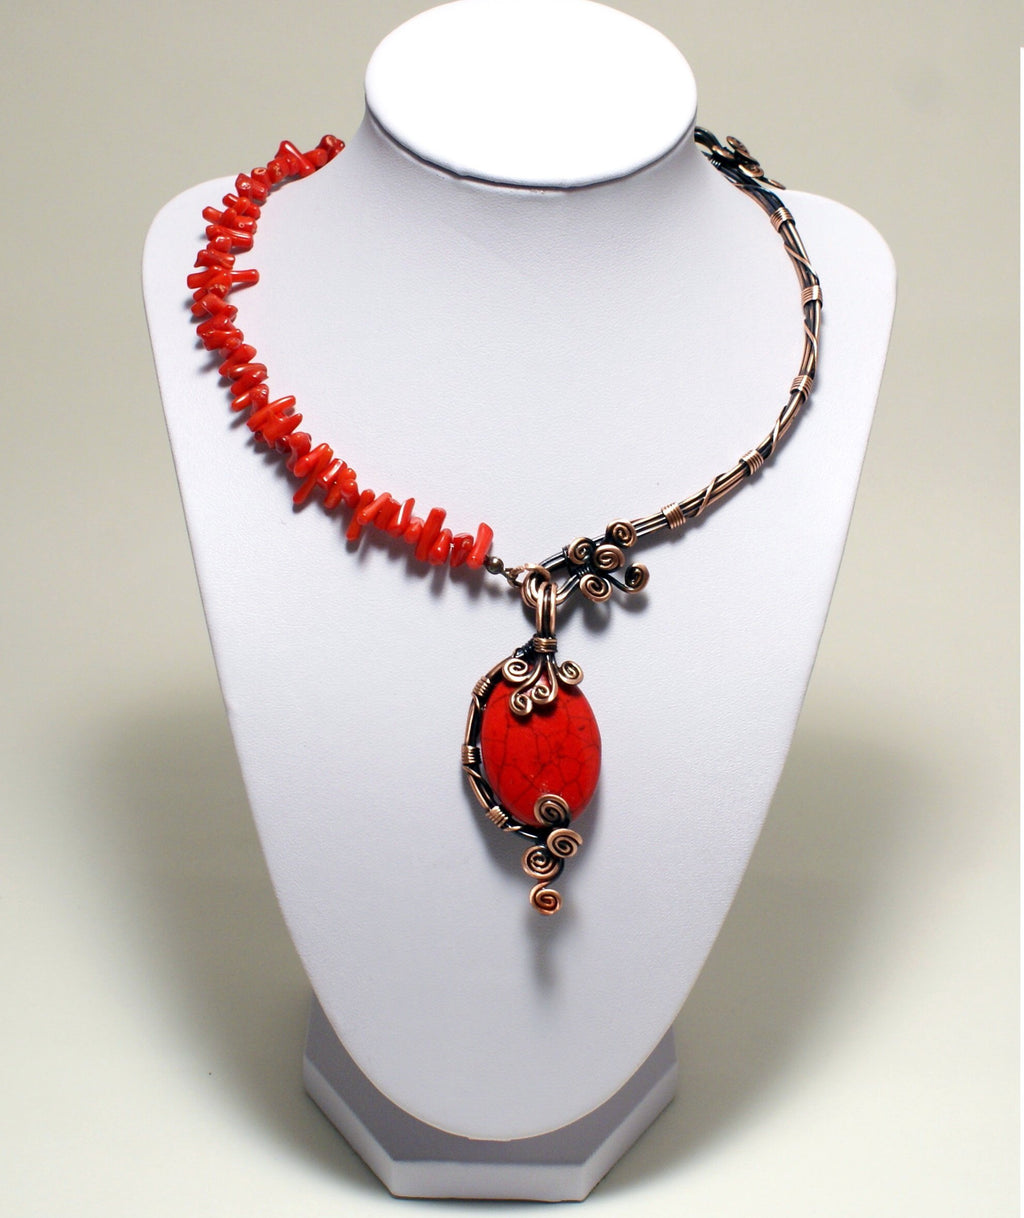 Handcrafted Wire Wrapped Red Necklace, Artisan Jewelry Handmade - Babazen